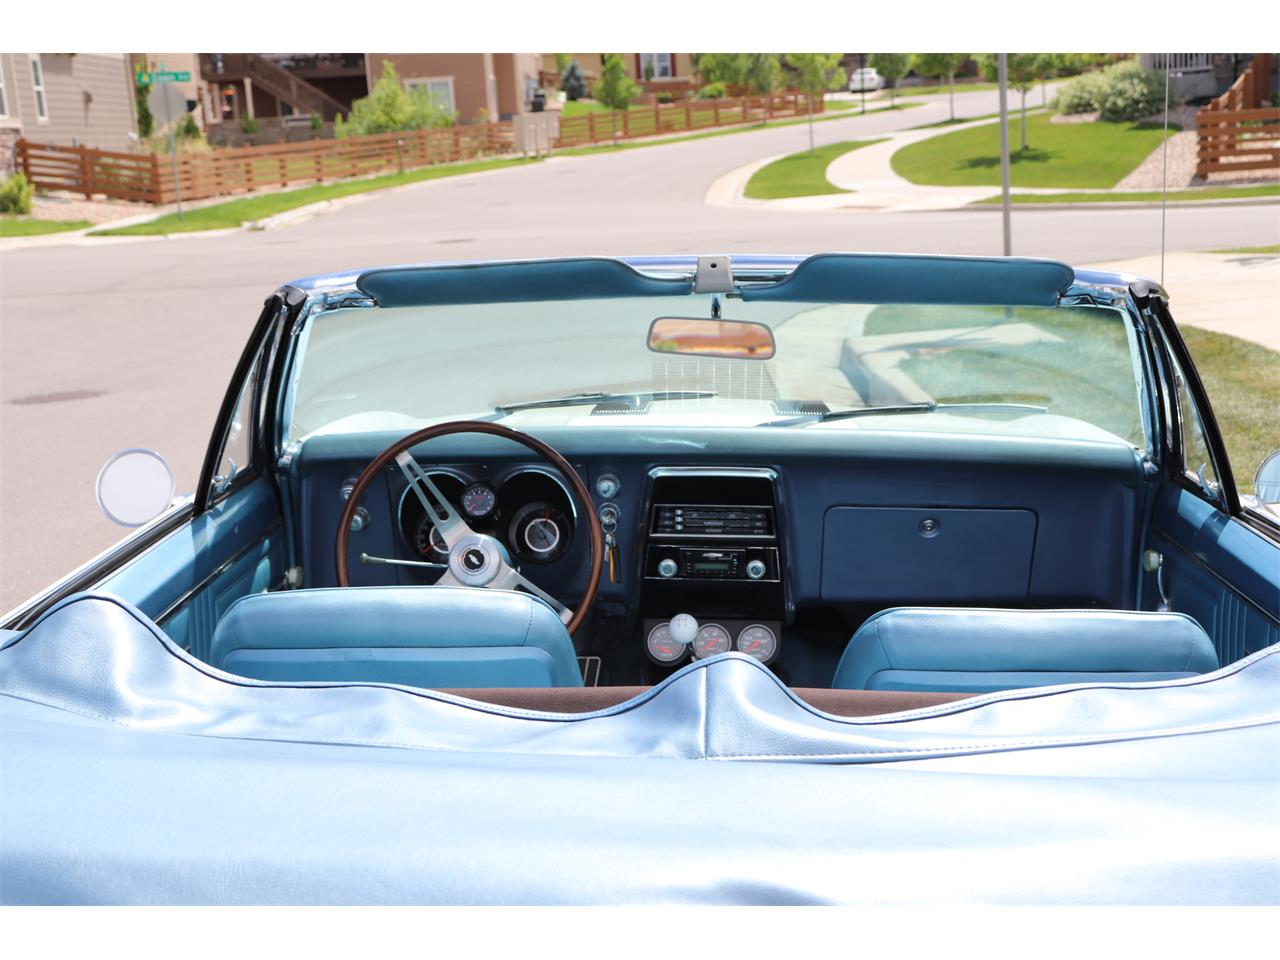 Large Picture of '67 Chevrolet Camaro SS - $47,500.00 - QPKA